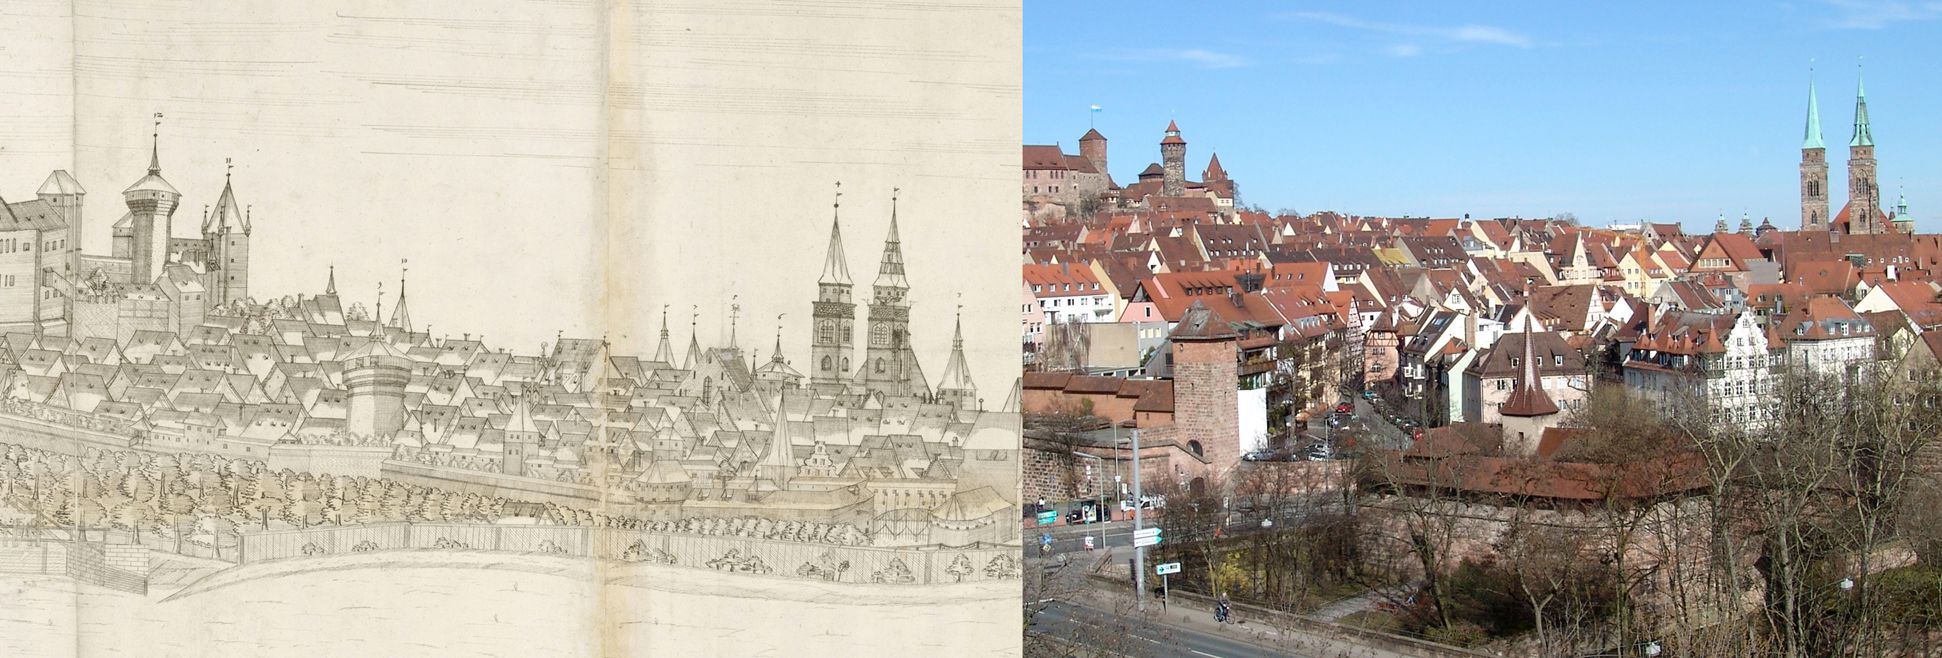 Panoramic view of the City of Nuremberg as seen from the west Contrasting detail from the central third with Heidenturm (Heathens`Tower), Sinwell Tower, Luginsland Tower, Neutor (bottom) and St. Sebald-Church with the state of today